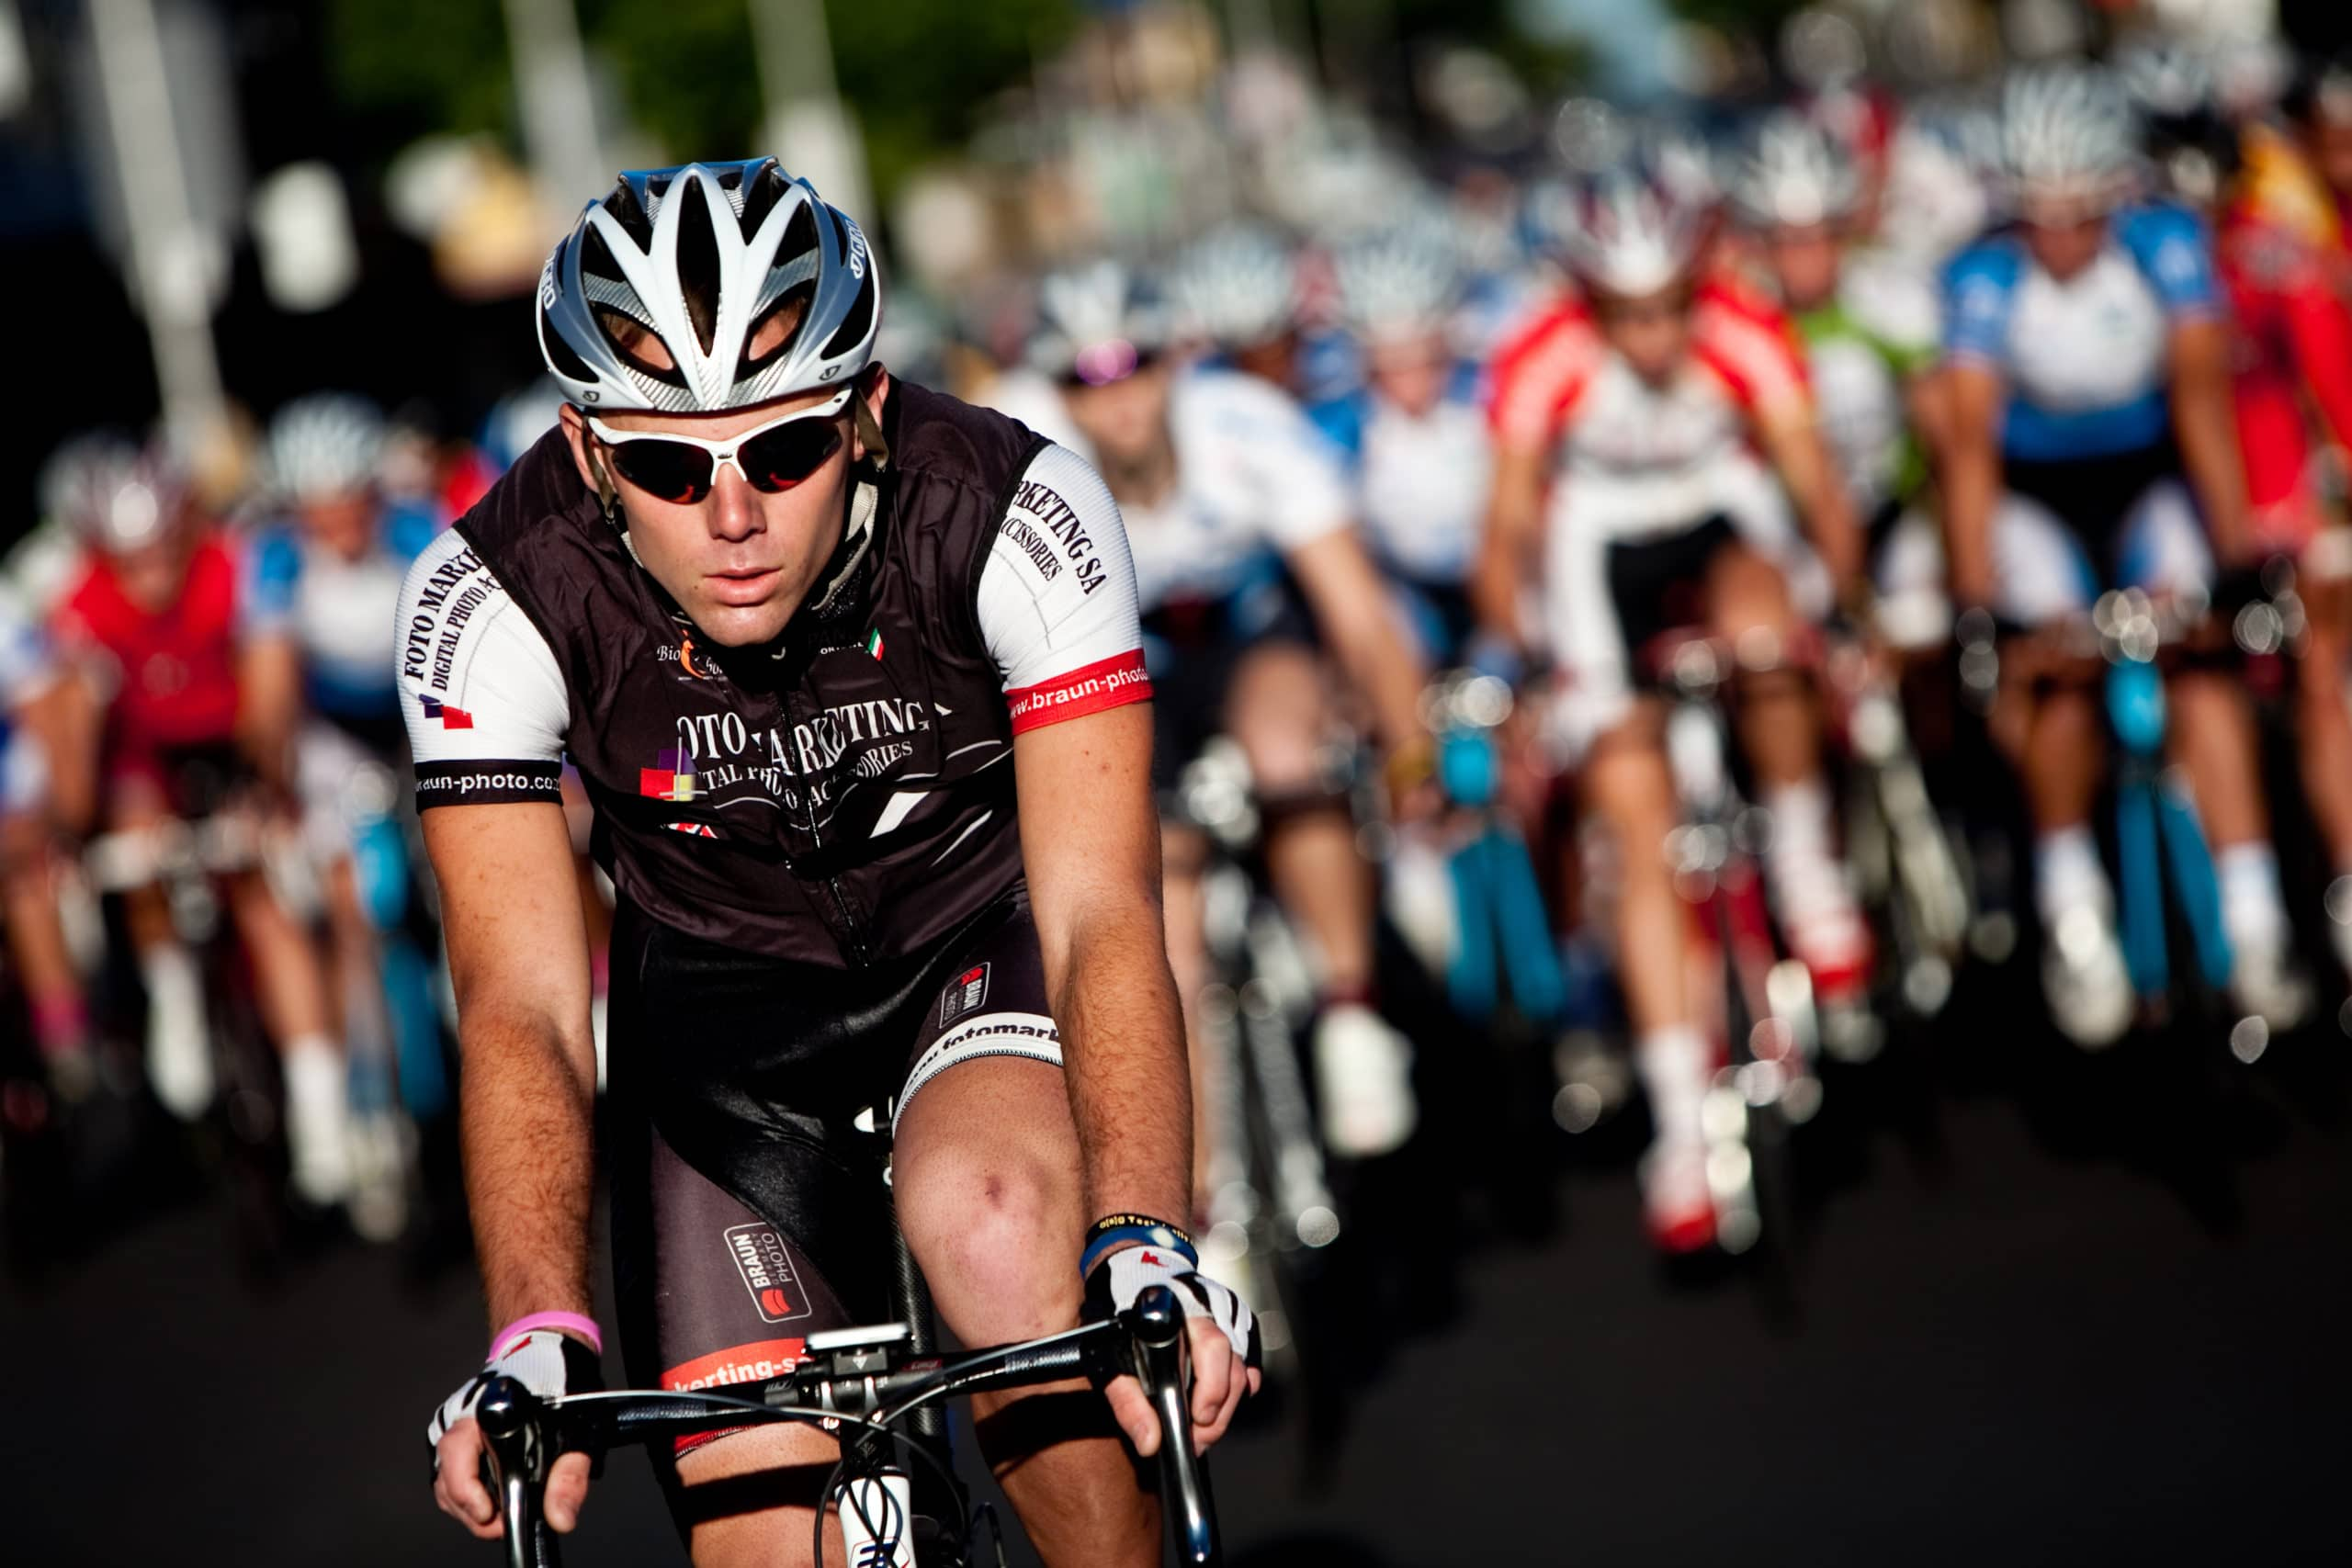 Cape Town Cycle Tour in South Africa is the worlds biggest timed race